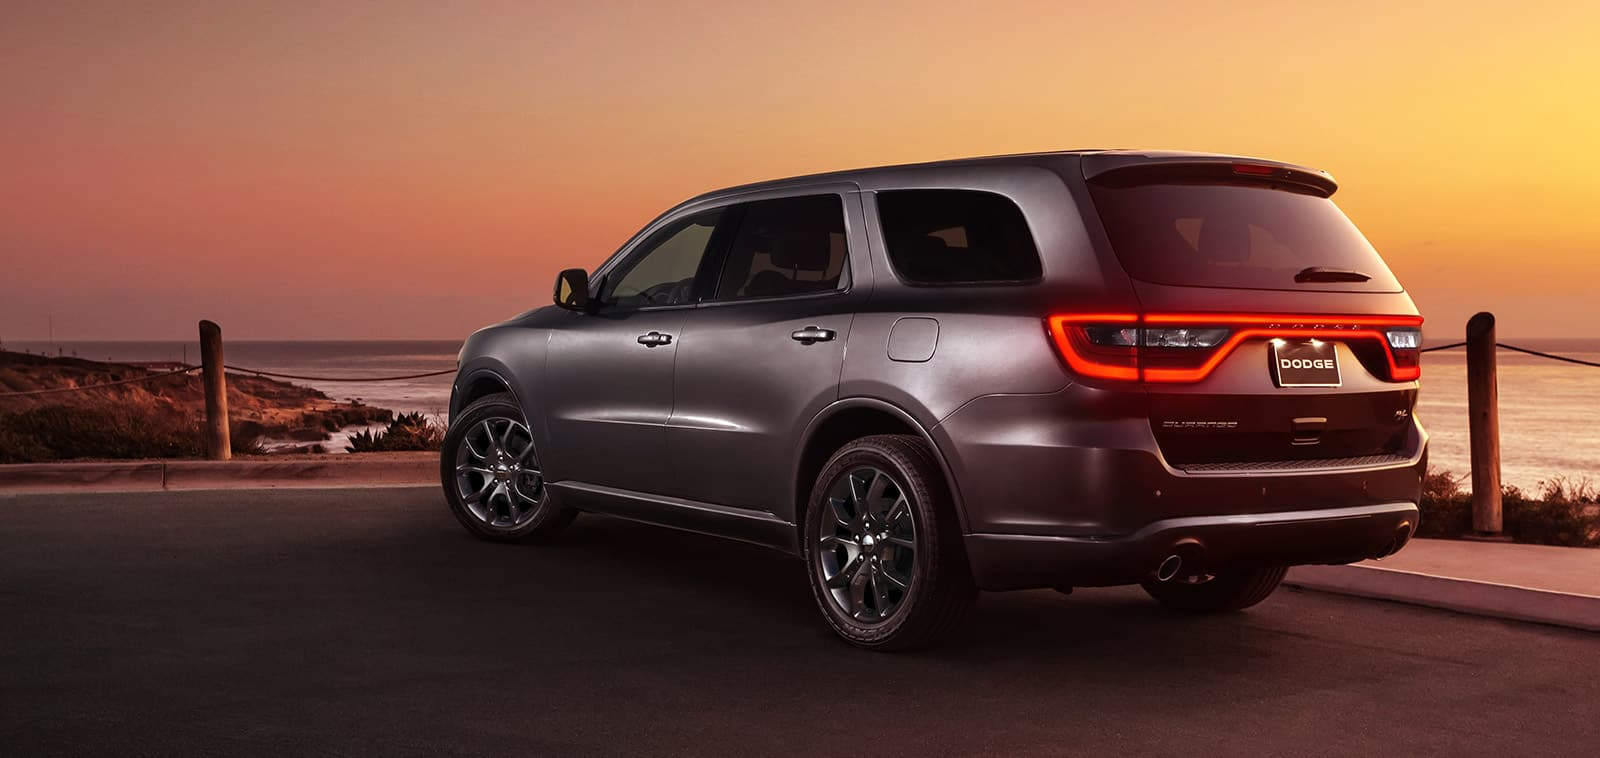 used 2016 dodge durango for sale near cleveland oh painesville oh buy a 2016 dodge durango in. Black Bedroom Furniture Sets. Home Design Ideas